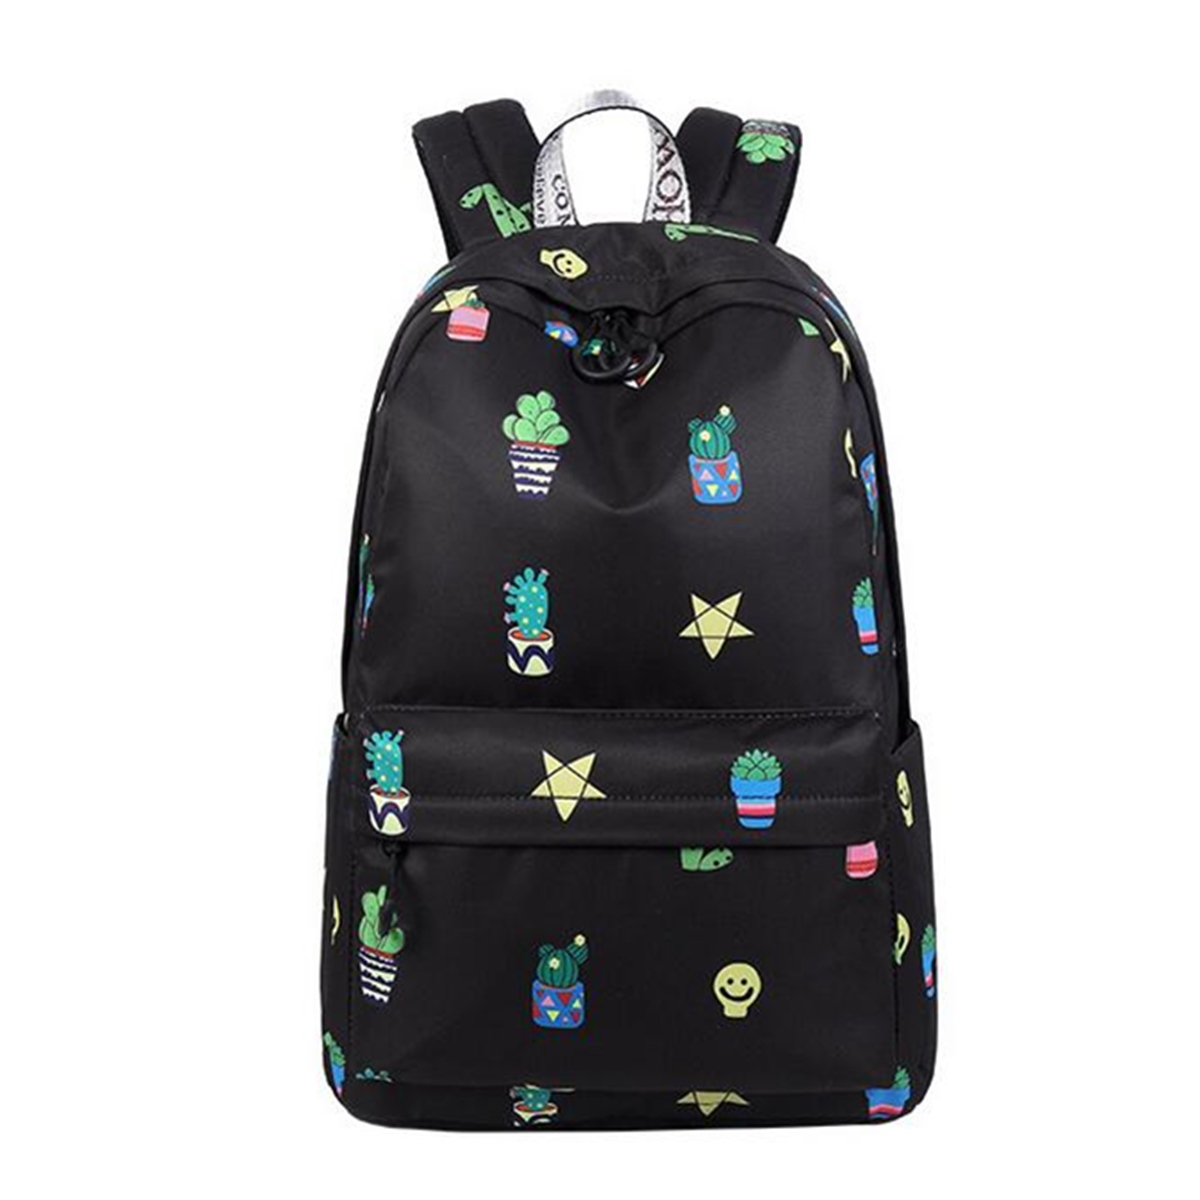 15.6 Inch Women Girl Backpack School Shoulder Laptop Bag Travel Satchel Handbag Outdoor Travel